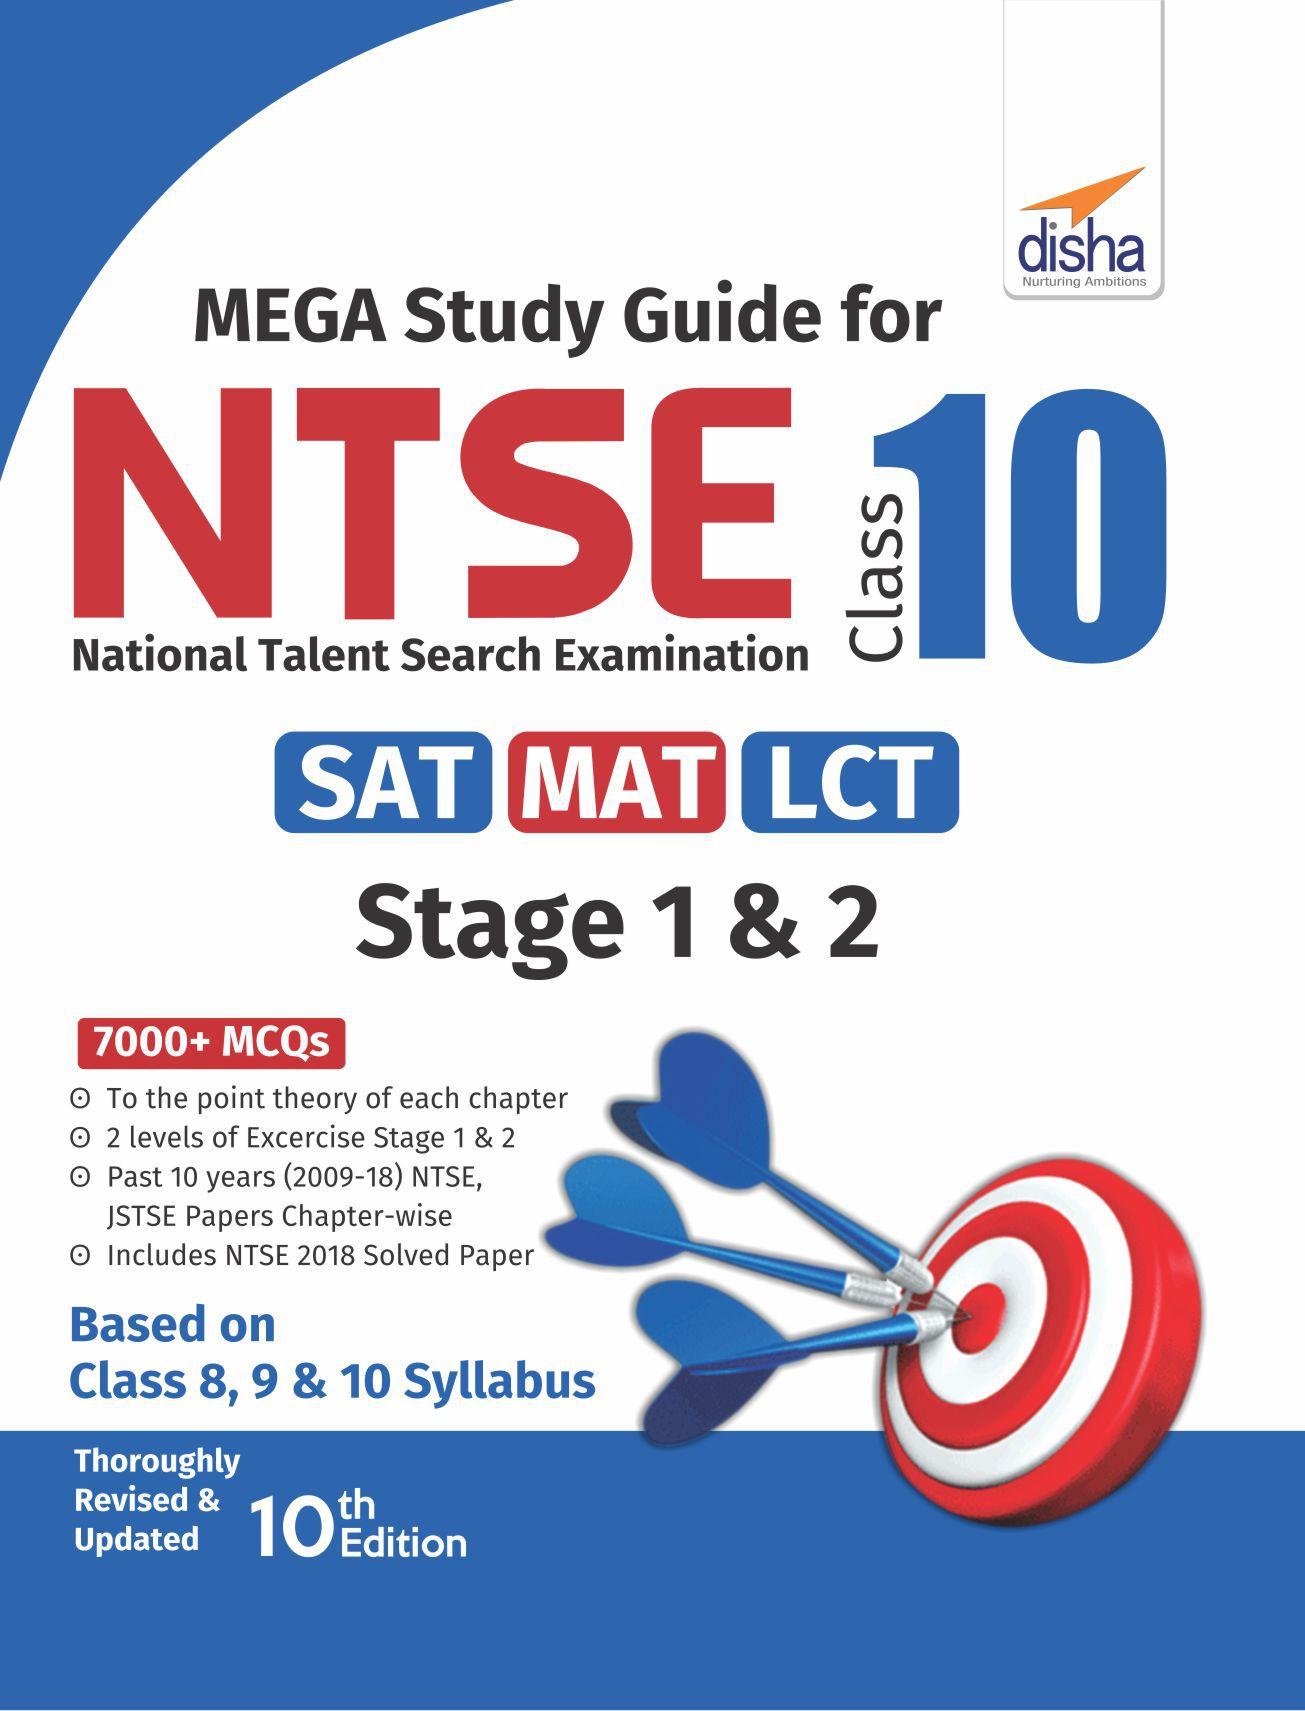 MEGA Study Guide for NTSE SAT MAT & LCT Class 10 Stage 1 & 2 10th Edition